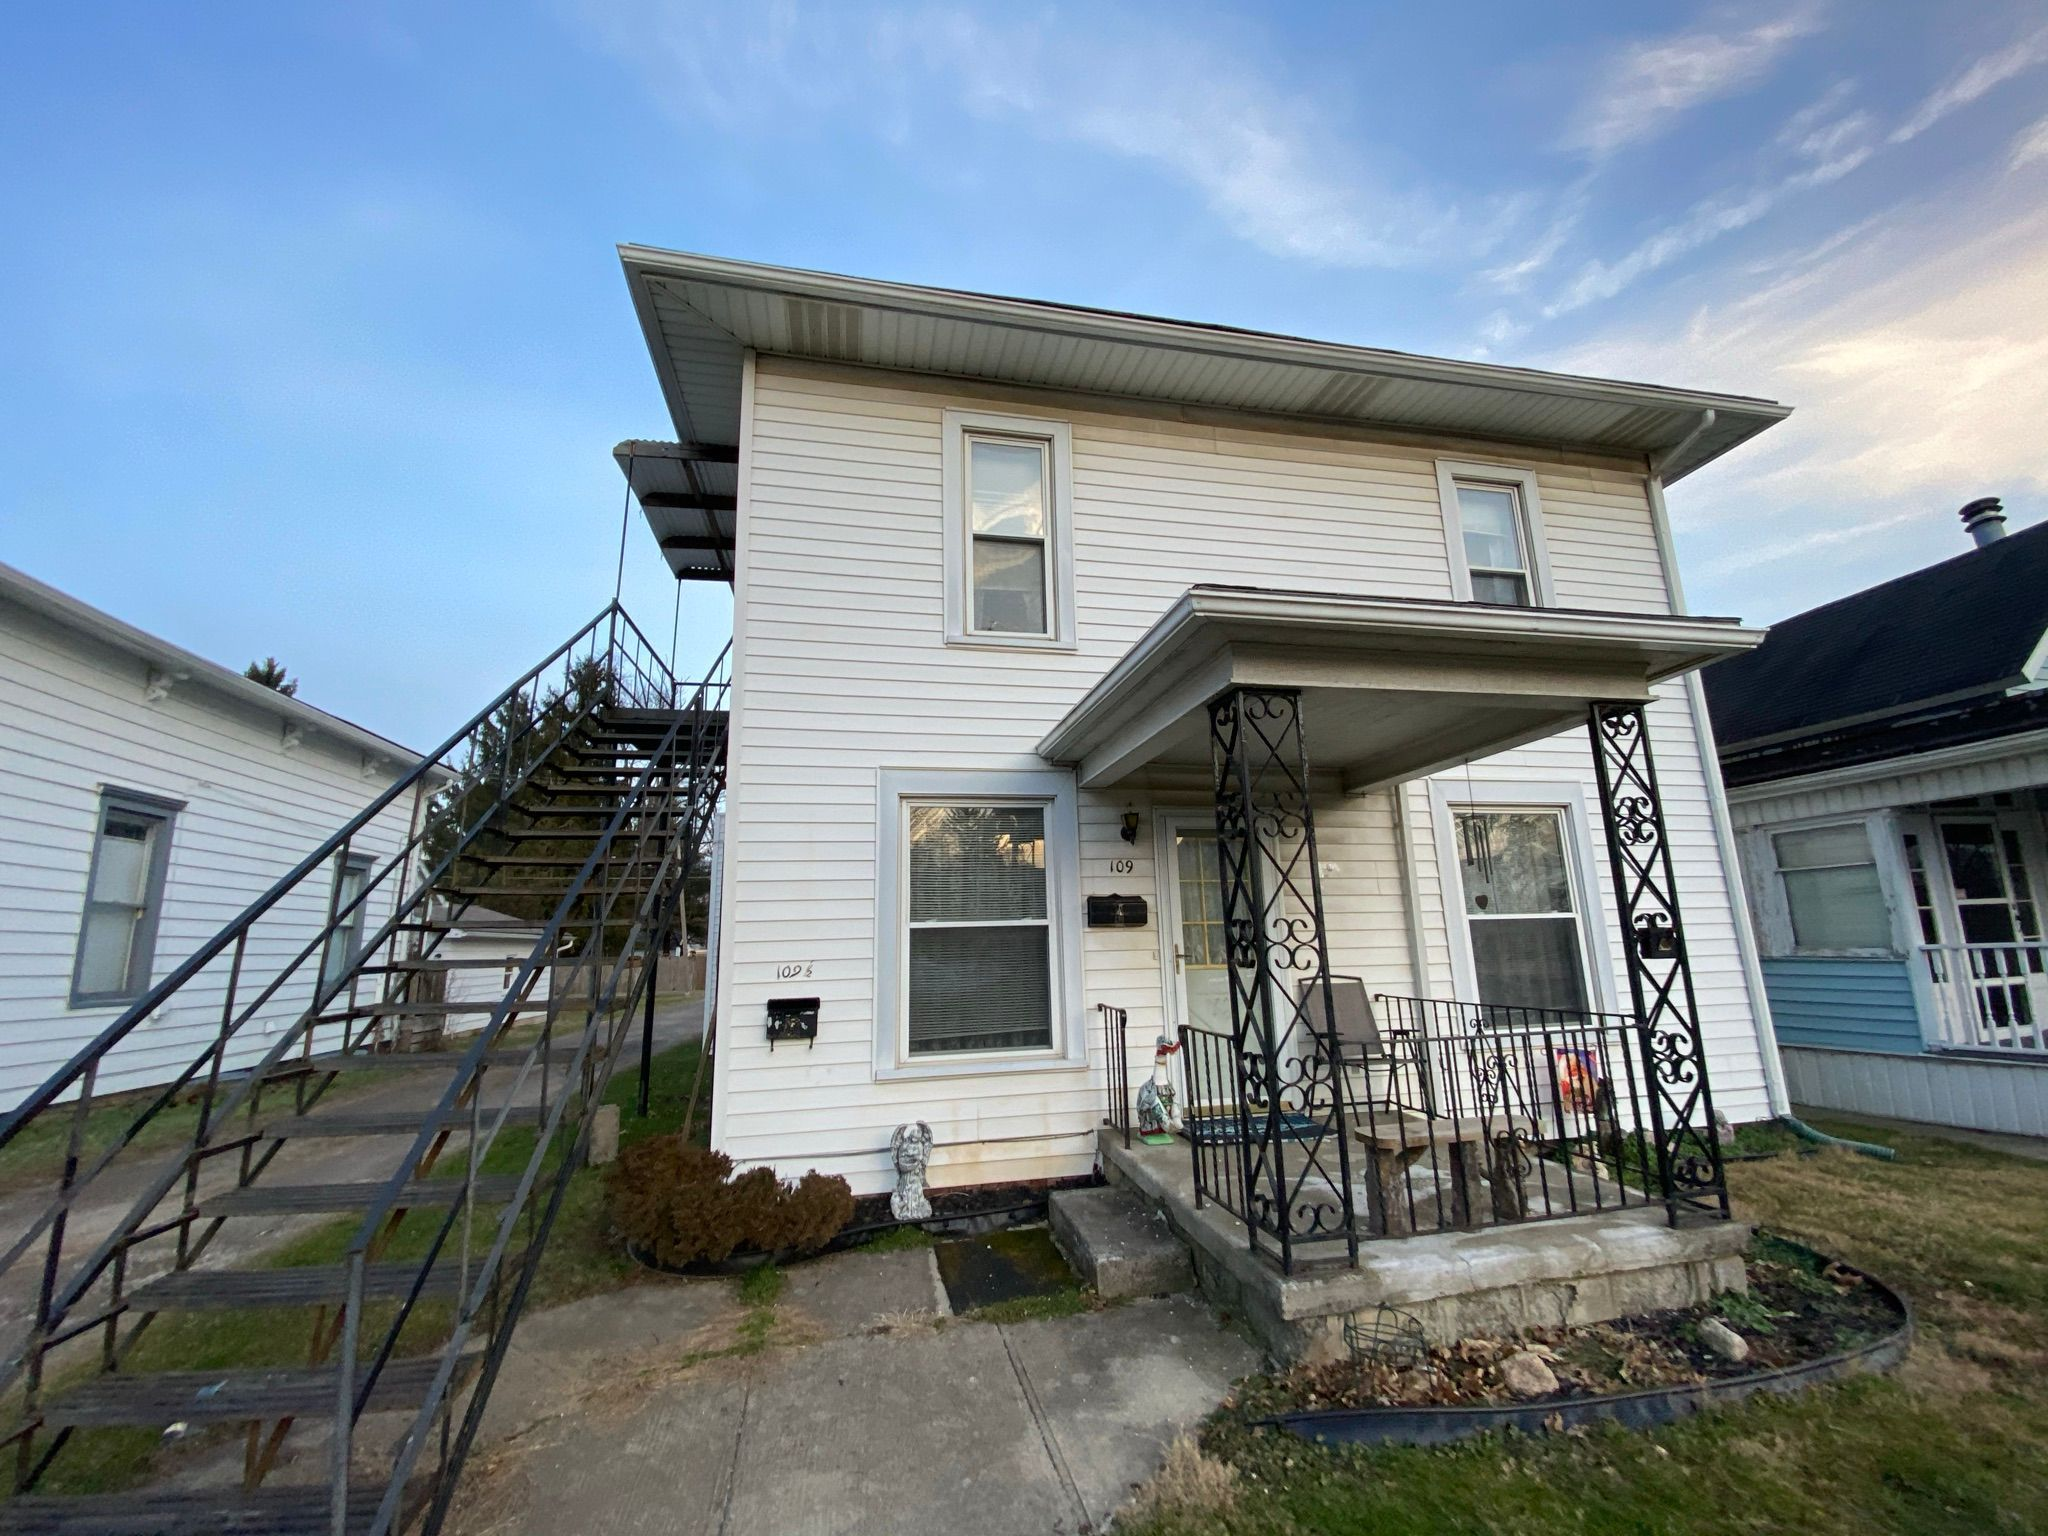 109 S Franklin St, Richwood, OH